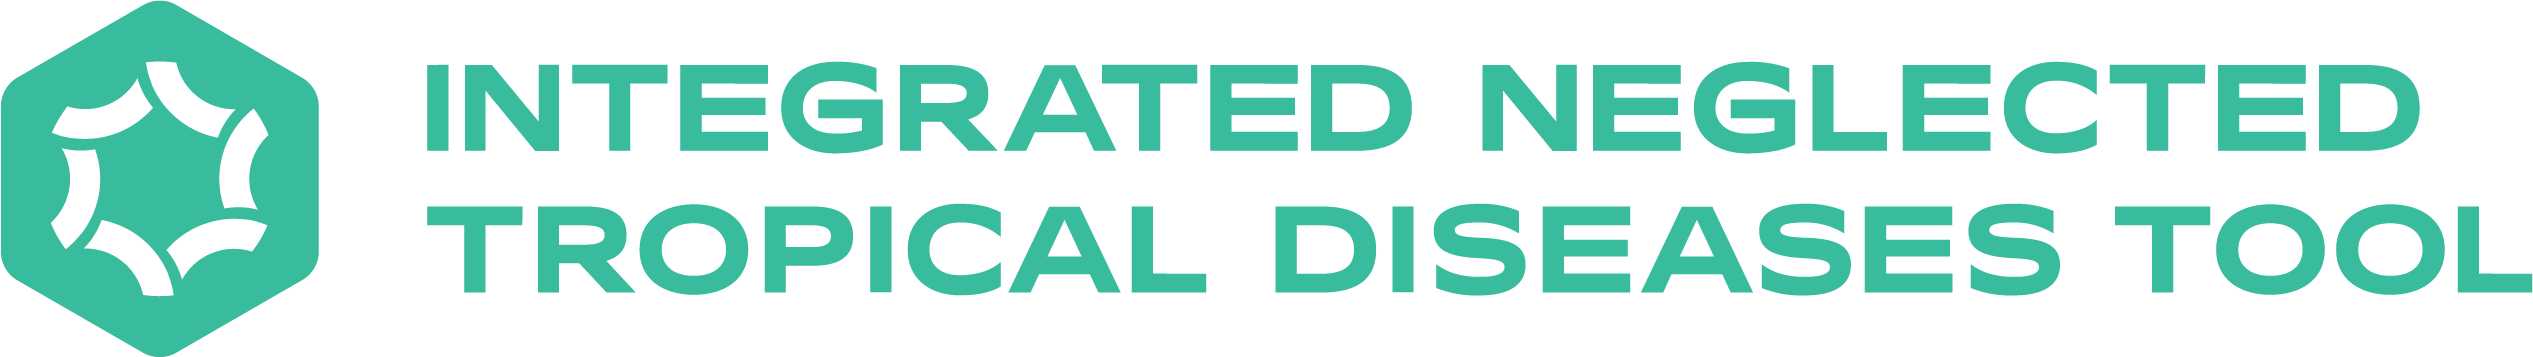 Integrated NTD logo